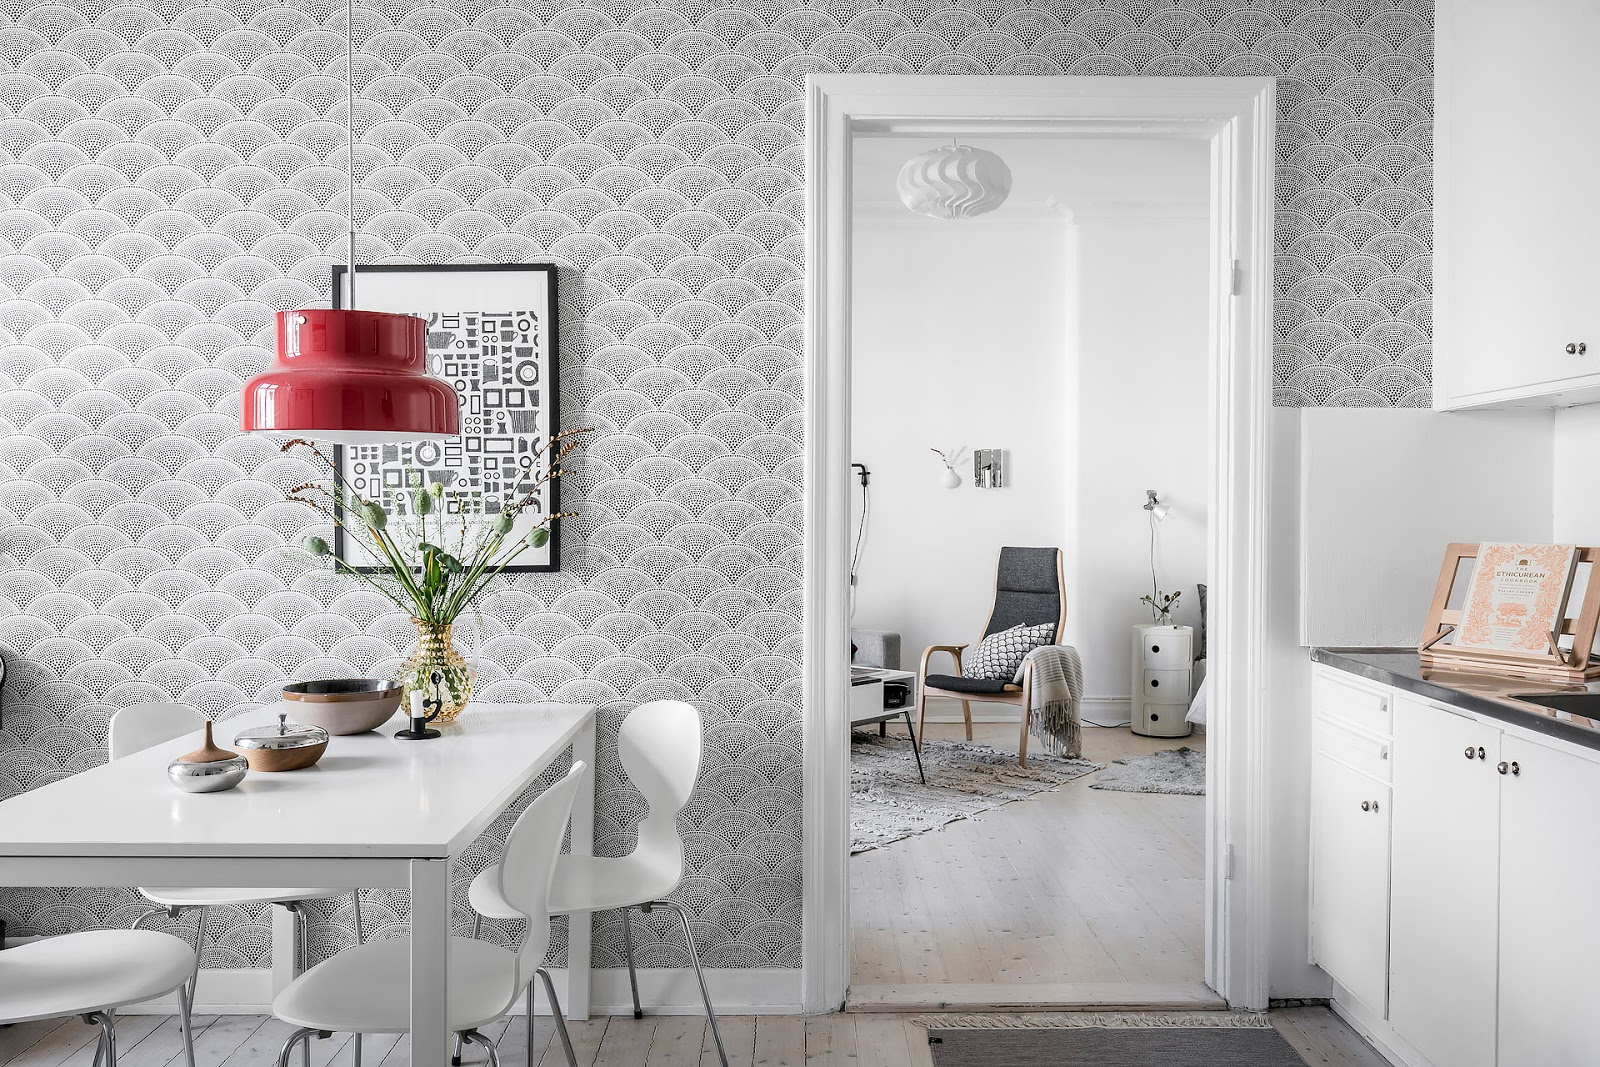 White kitchen design inside of a small scandinavian interior, pattern wallpaper, red retro lamp